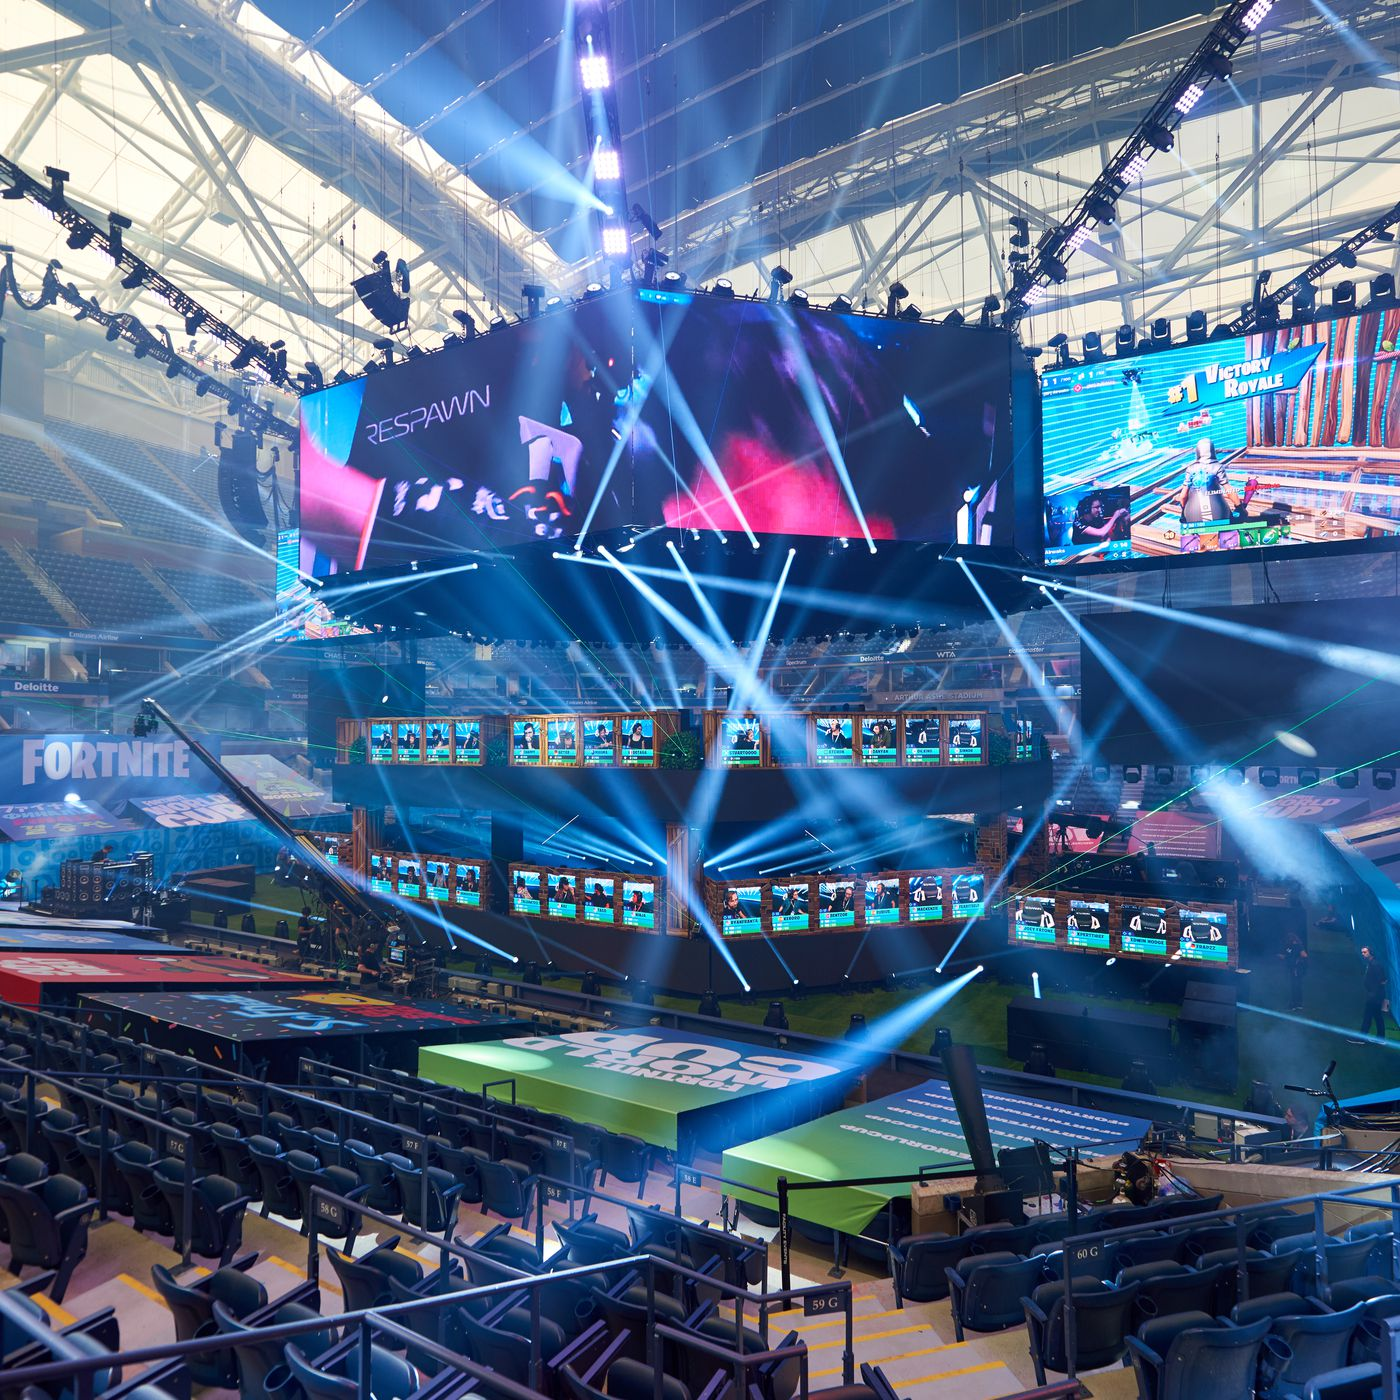 How the Fortnite World Cup could inspire the next Ninja or